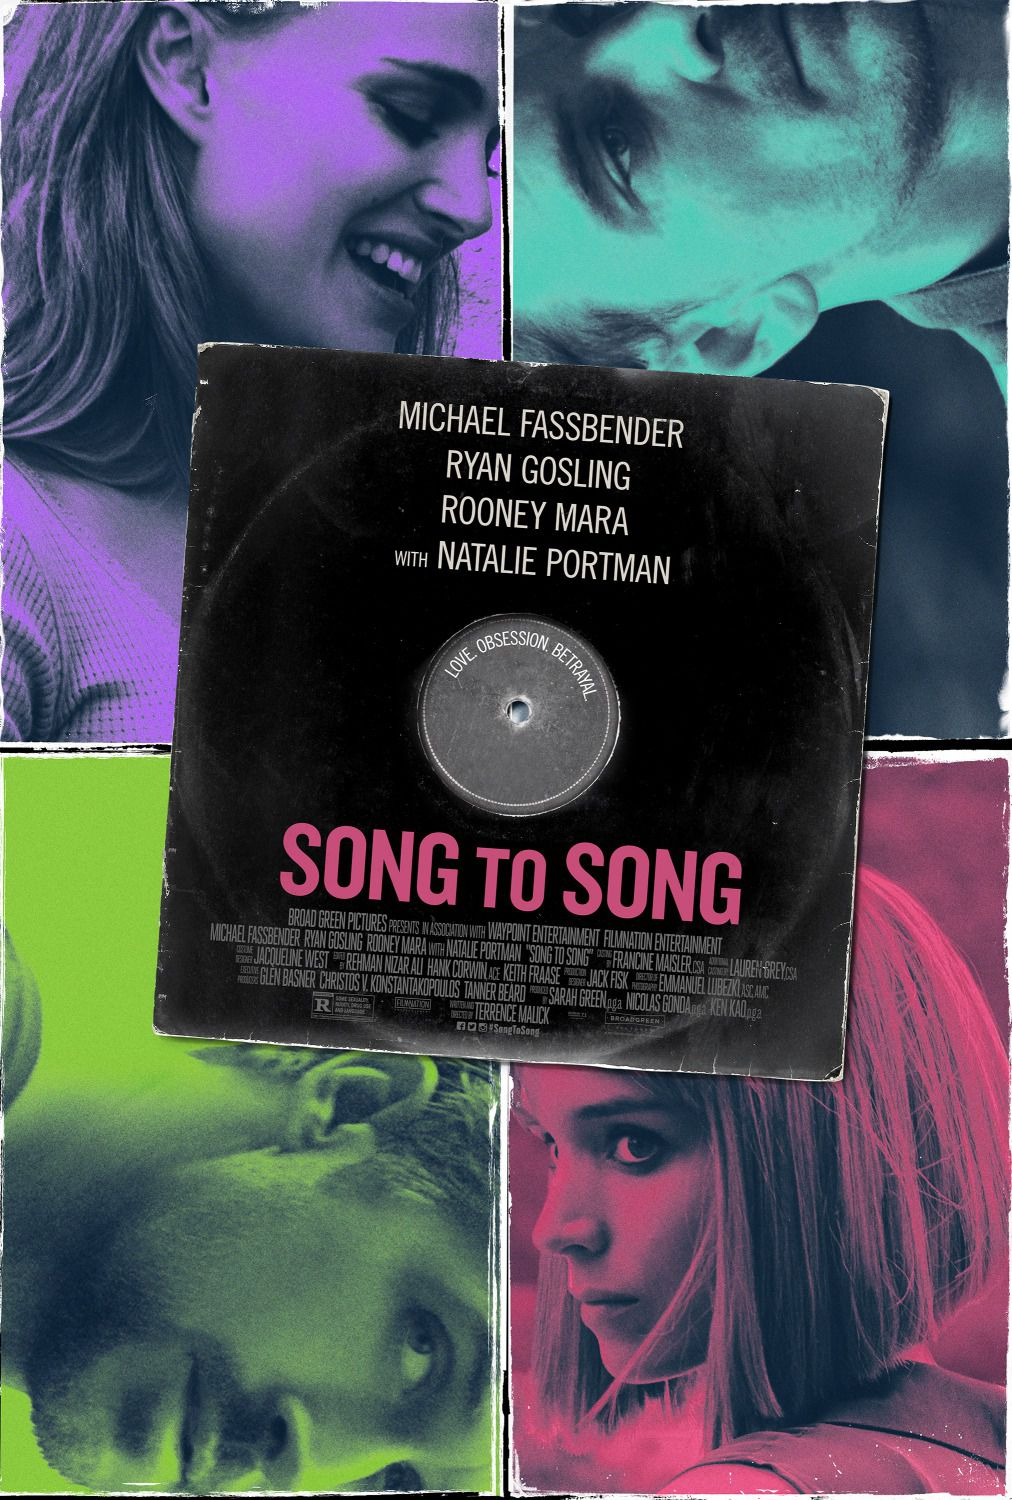 Song to Song - Love, Obsession, Betrayal - Michael Fassbender - Ryan Gosling - Rooney Mara - Natalie Portman